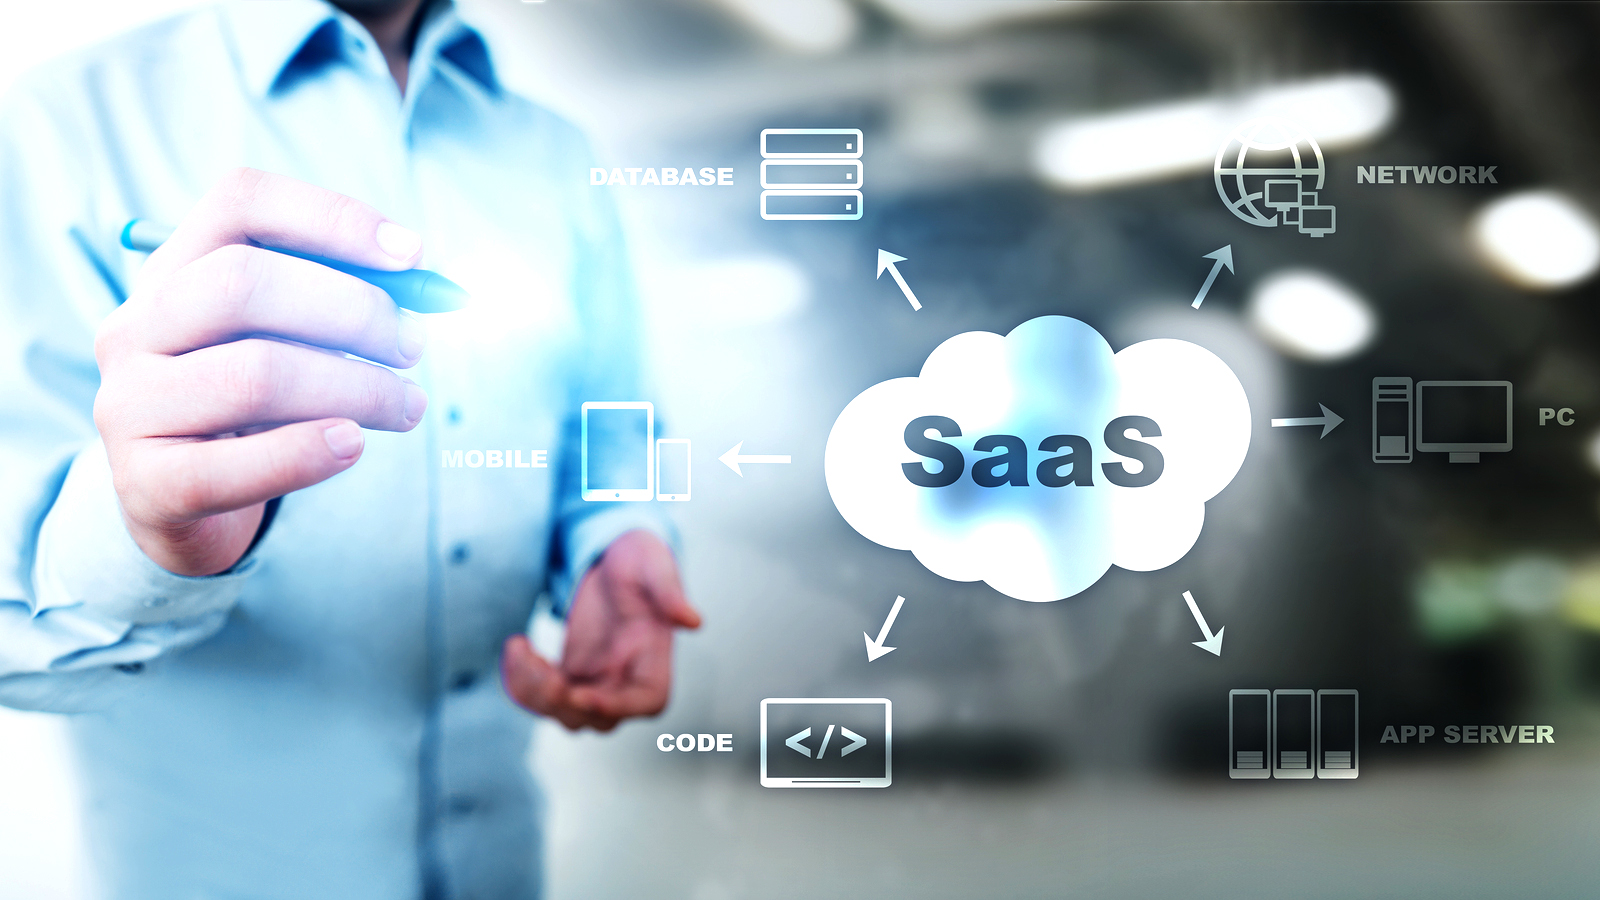 Saas - Software As A Service